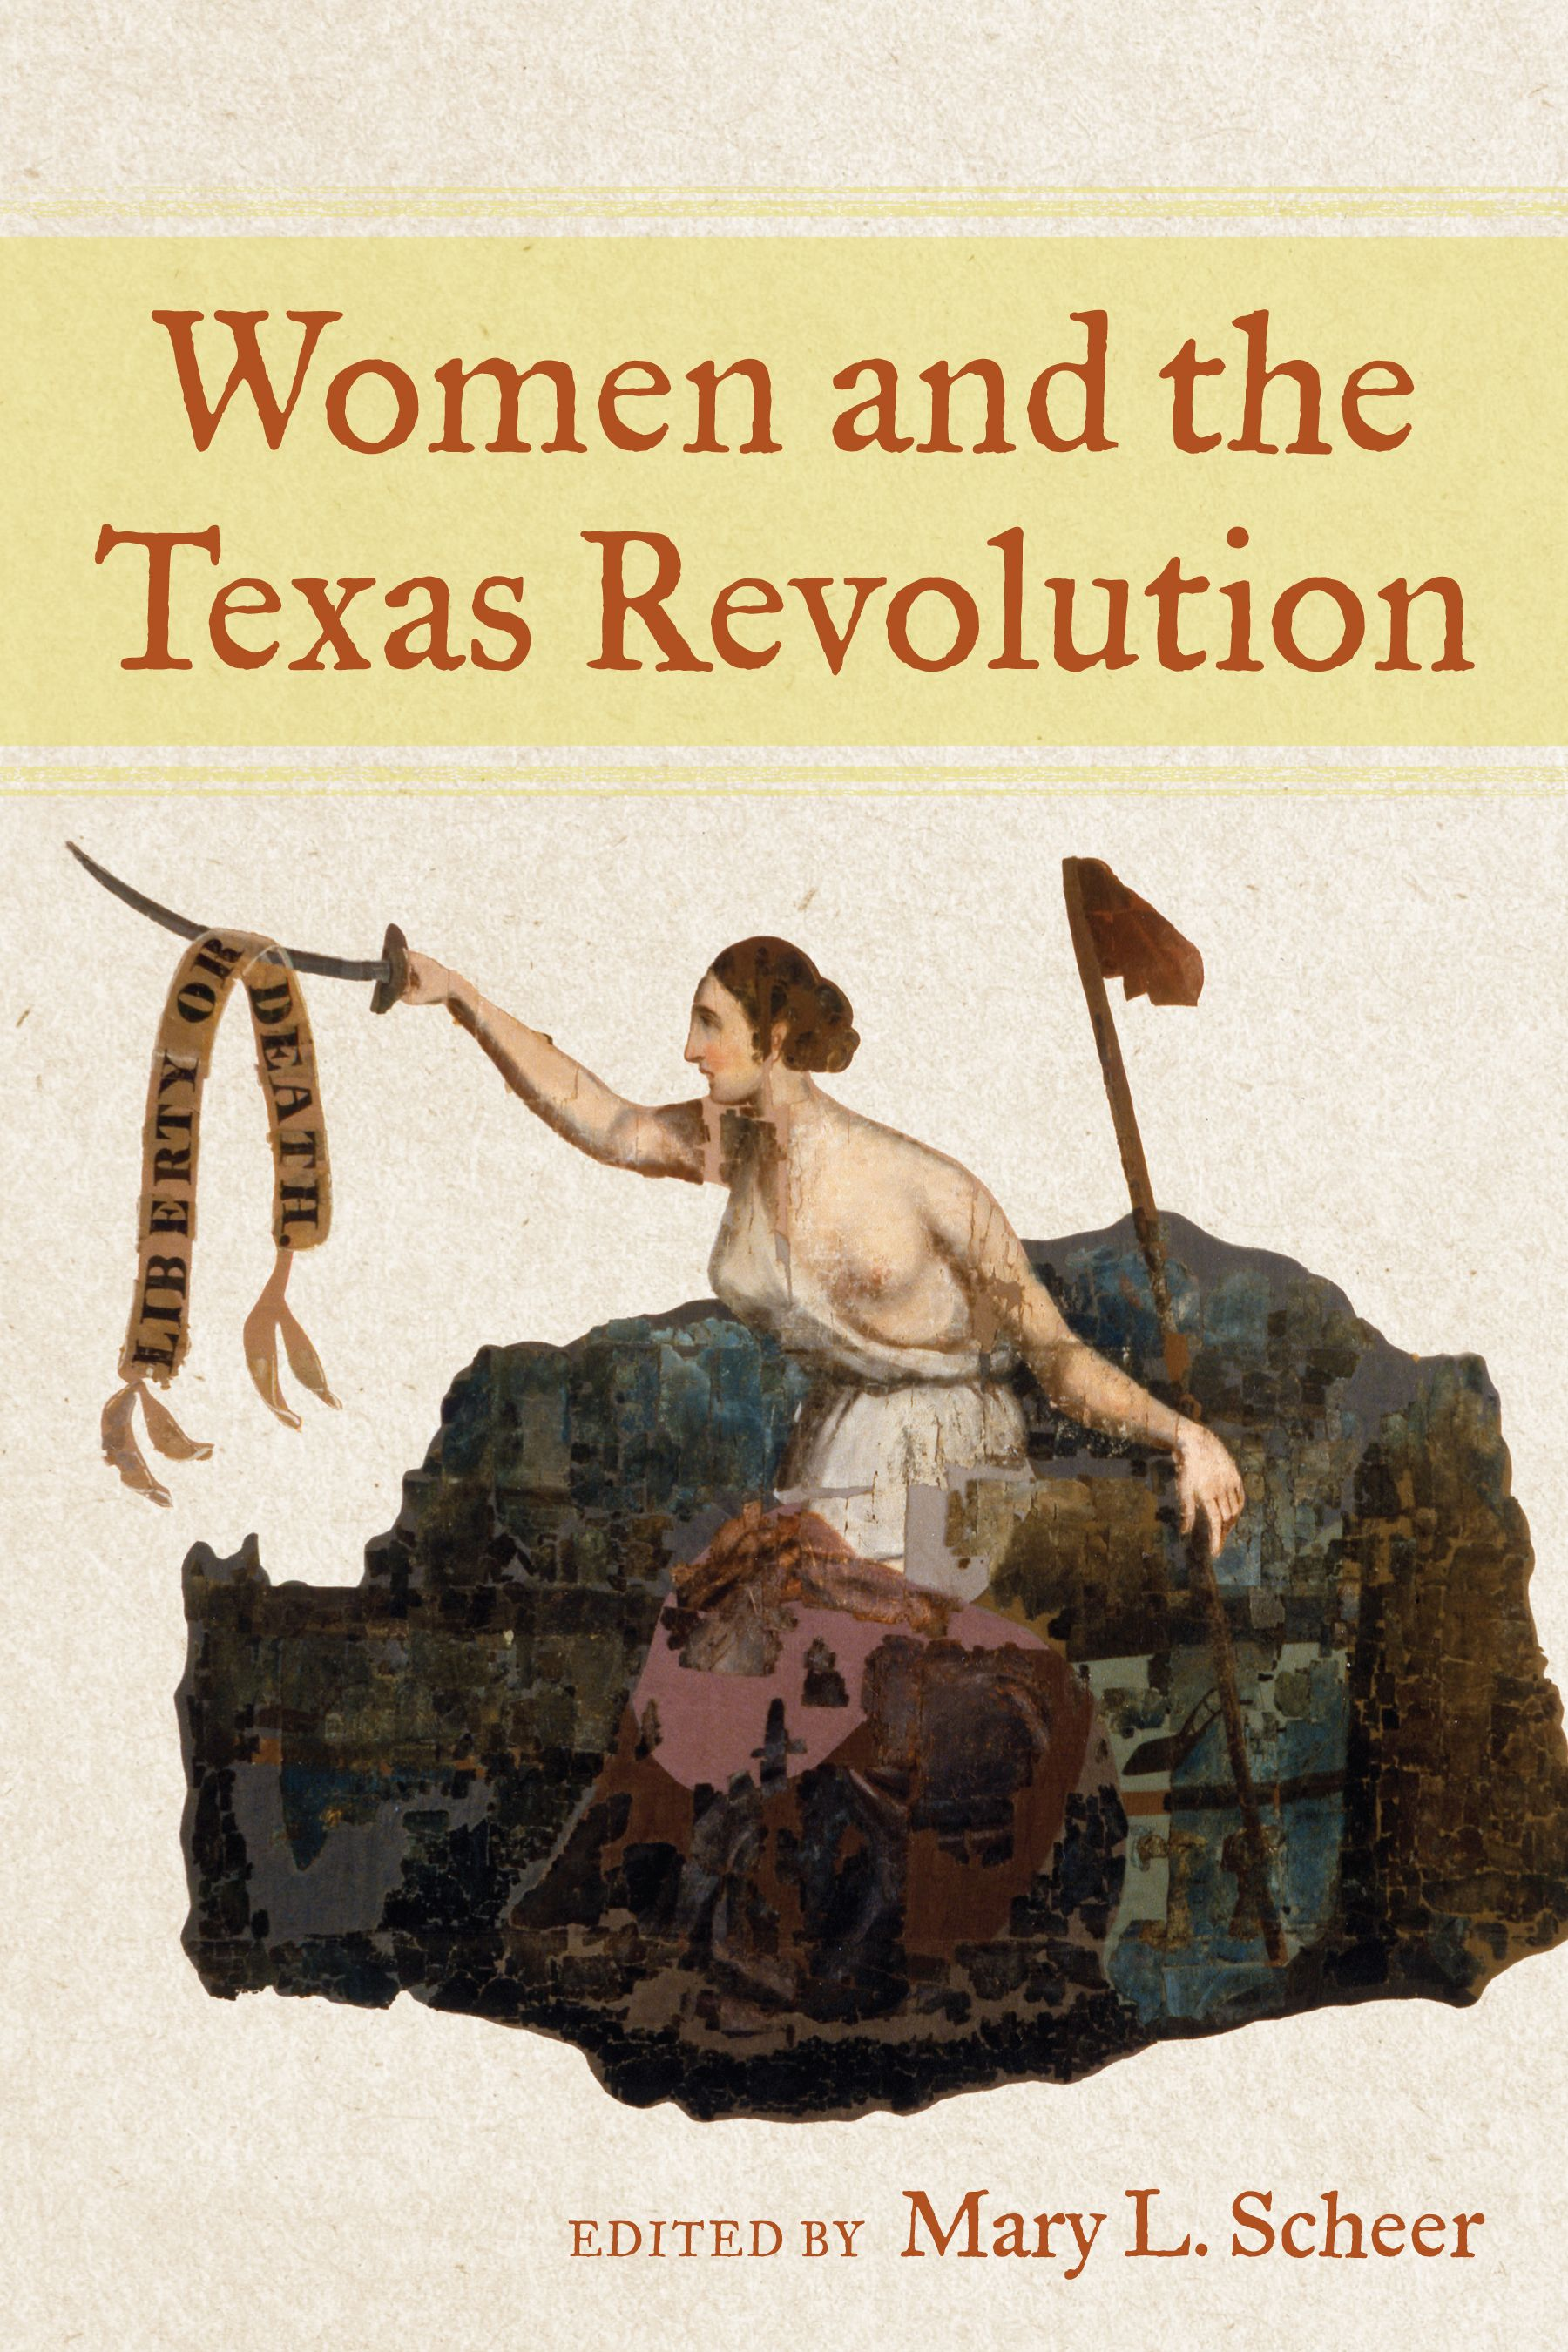 the texas revolution Cupied an important place in the minds of the leaders of the texas revolution  their rhetoric brimmed with imagery depicting a struggle between freedom and.